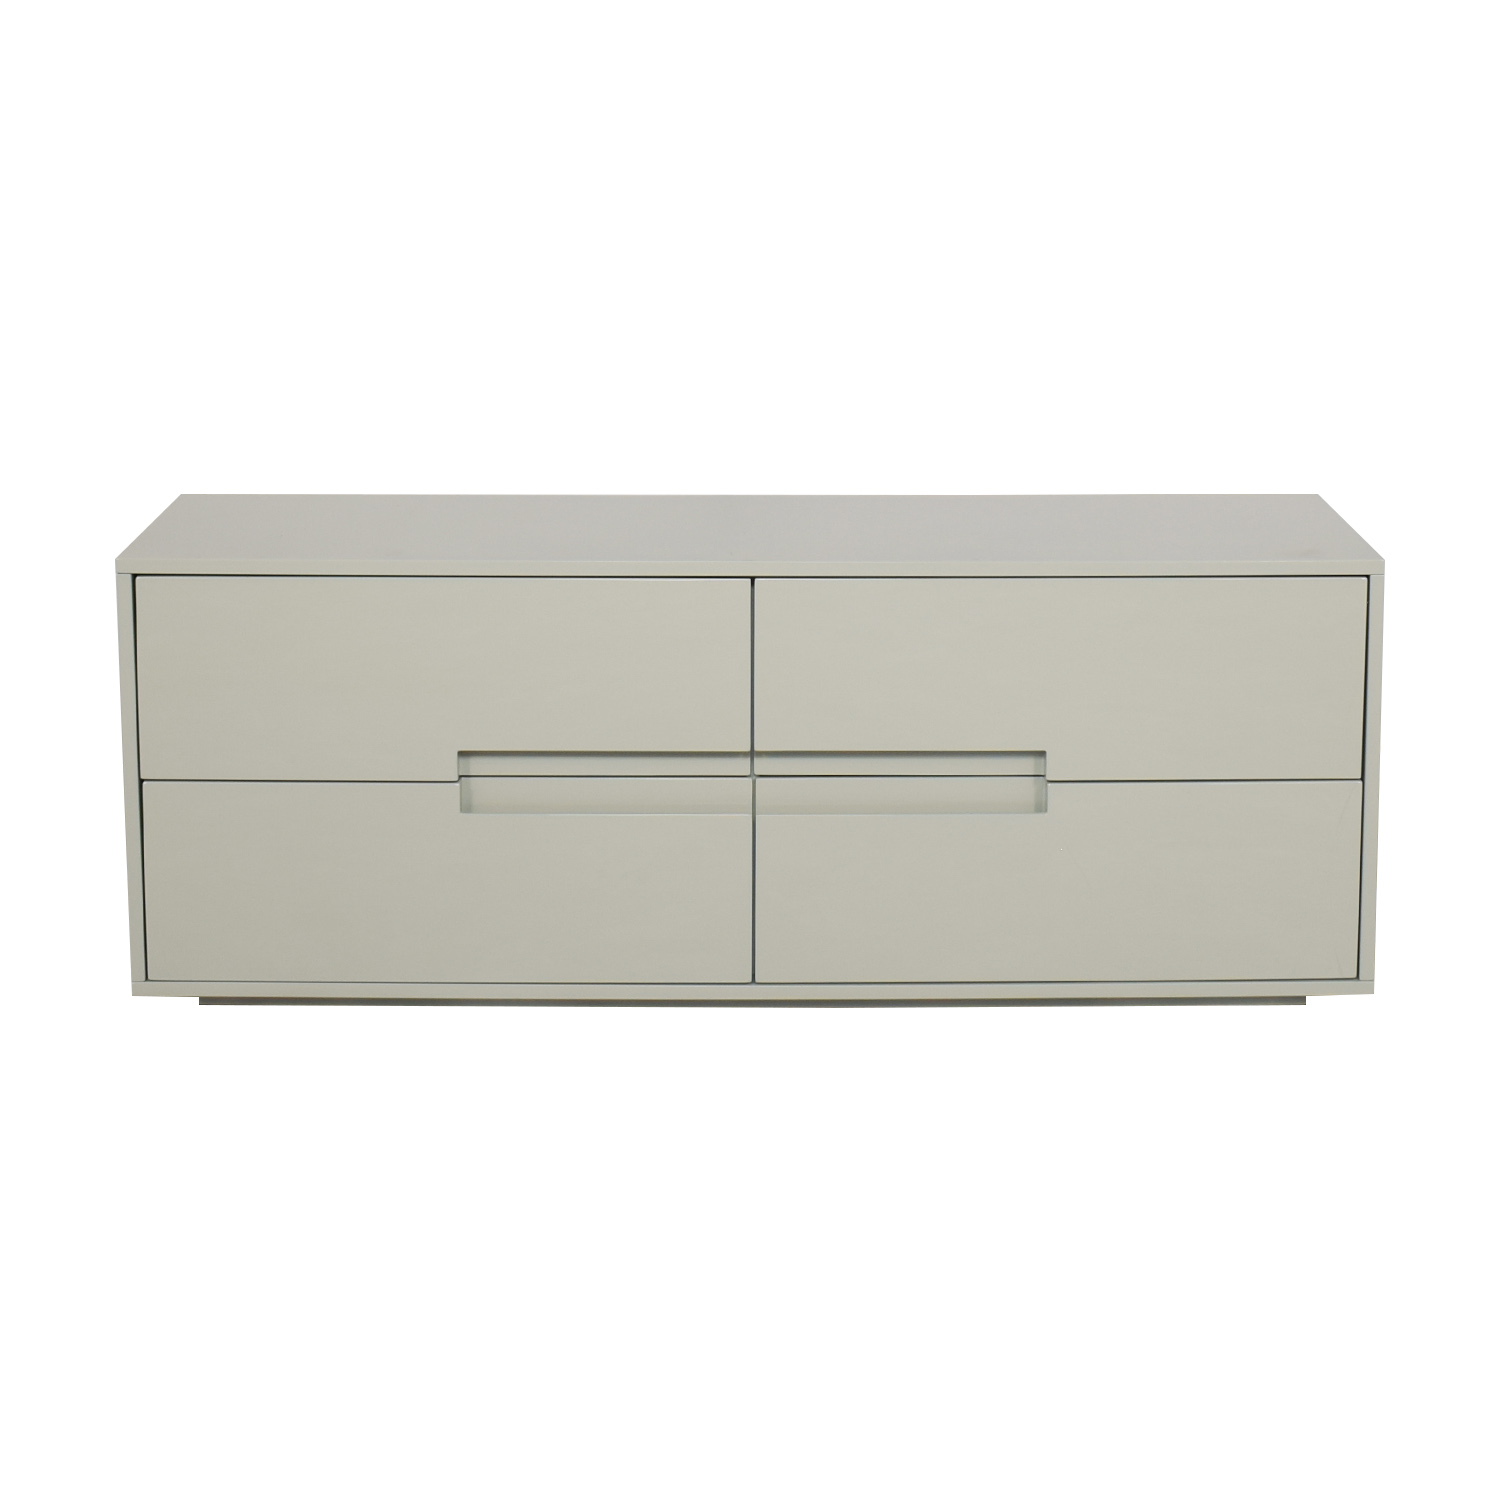 CB2 CB2 Latitude Low Dresser dimensions